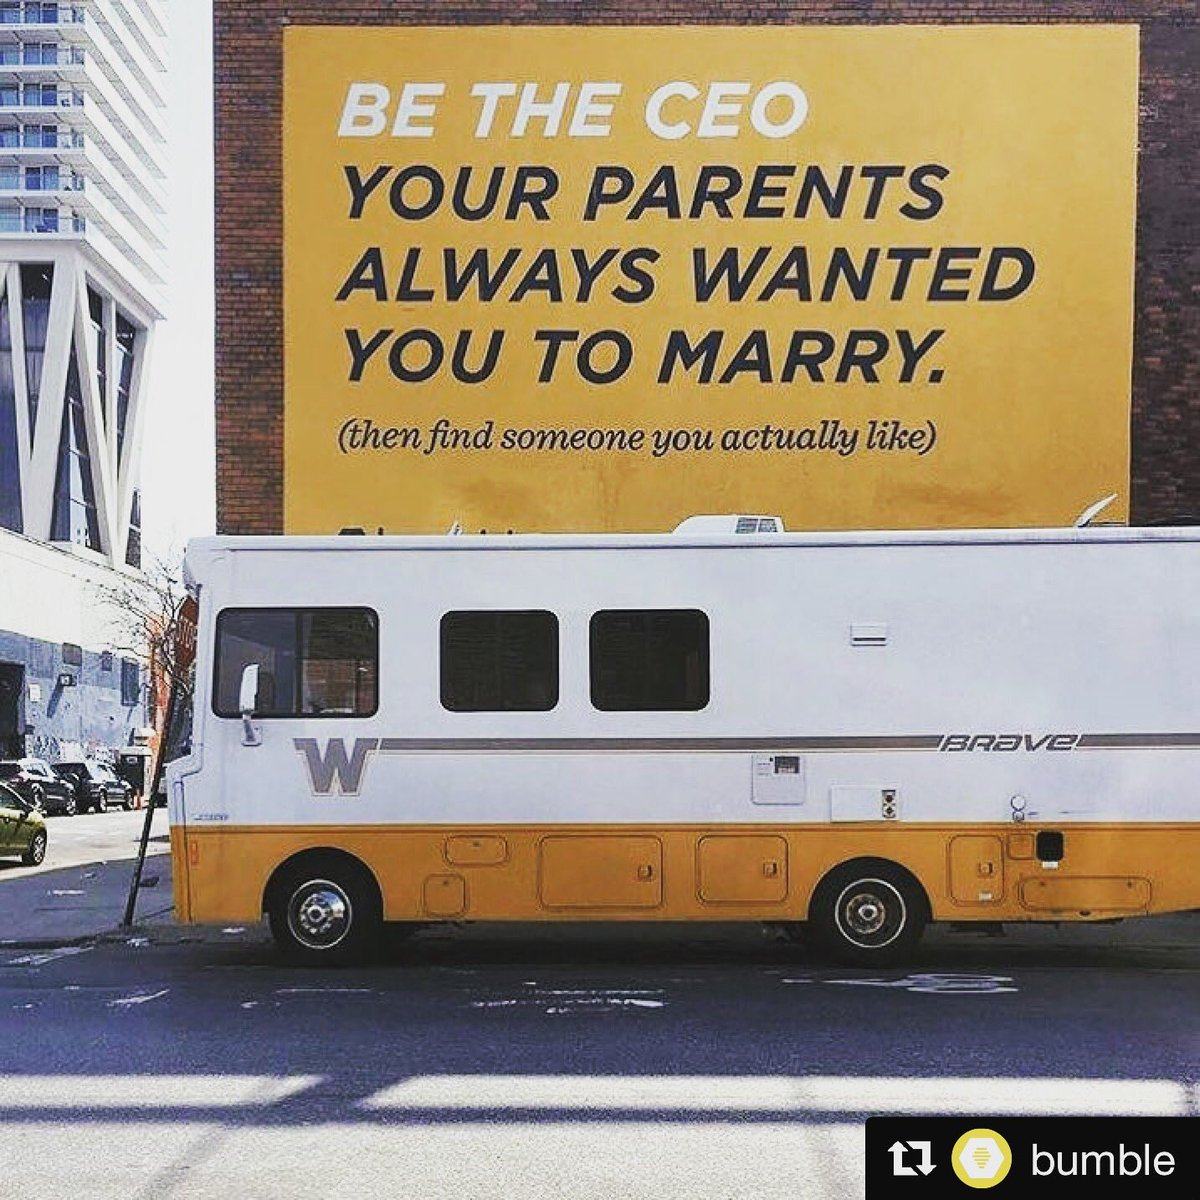 Or marry, have an #entrepreneurialspirit and take a #startup journey together! #WednesdayWisdom<br>http://pic.twitter.com/y5x5QWt9OU